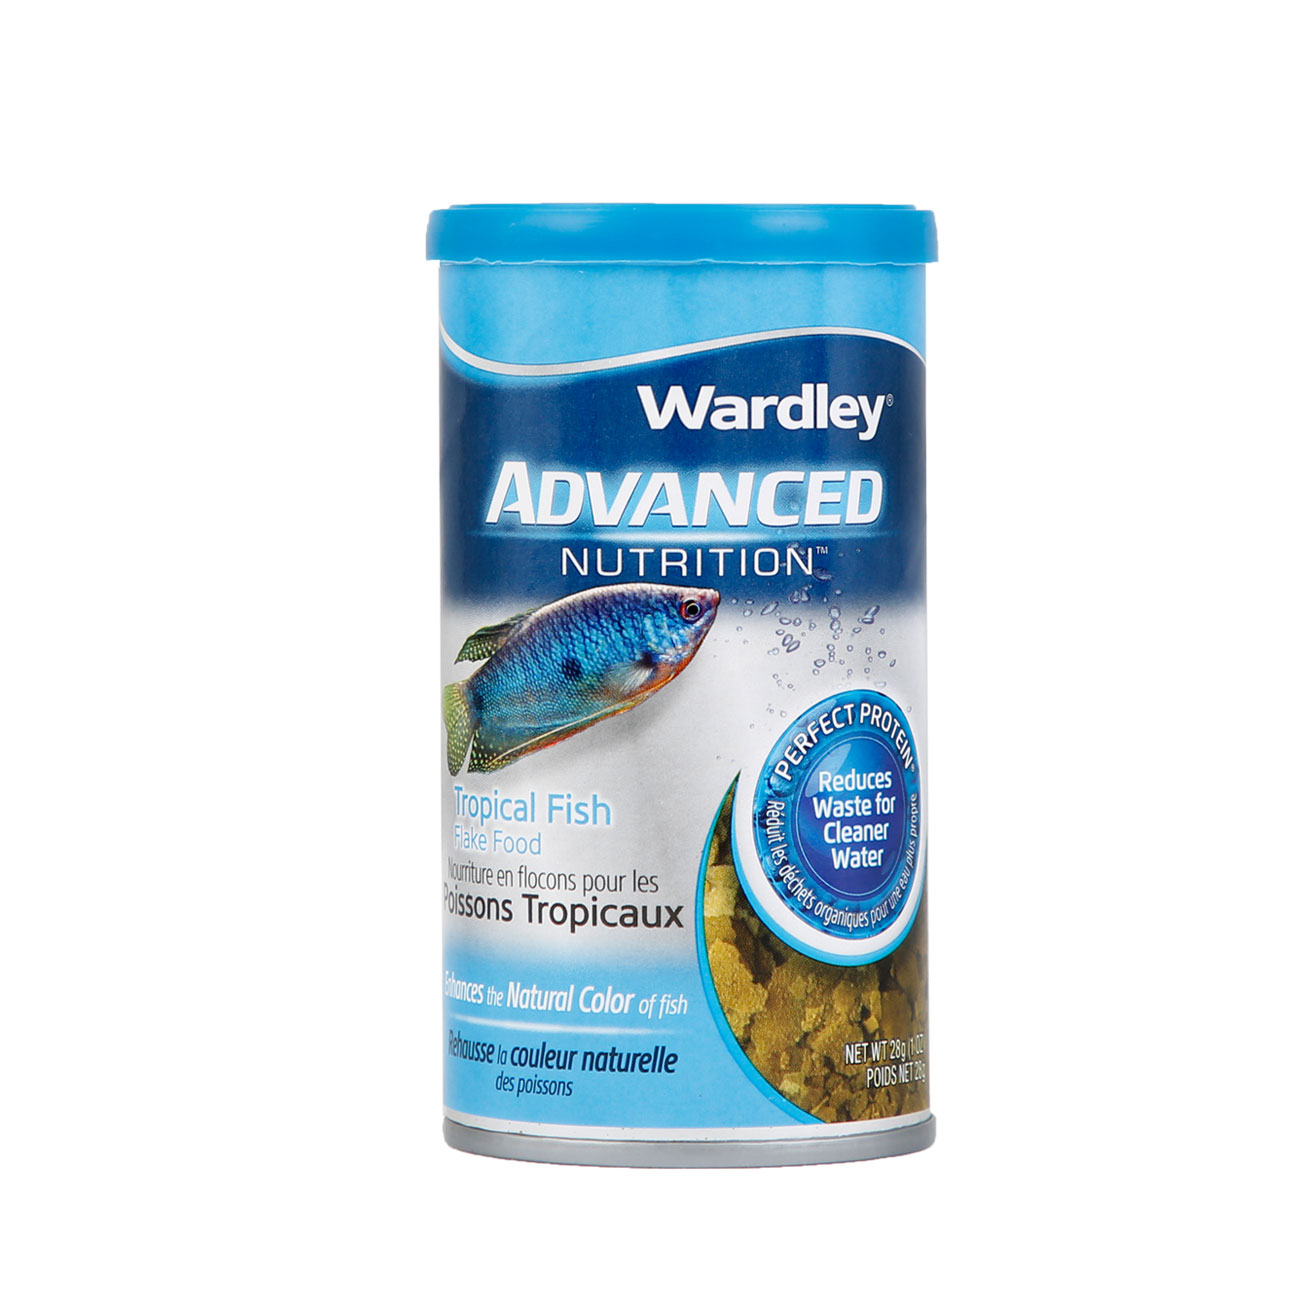 Wardley advanced nutrition tropical fish flake food. Wardley SKU#4332400591